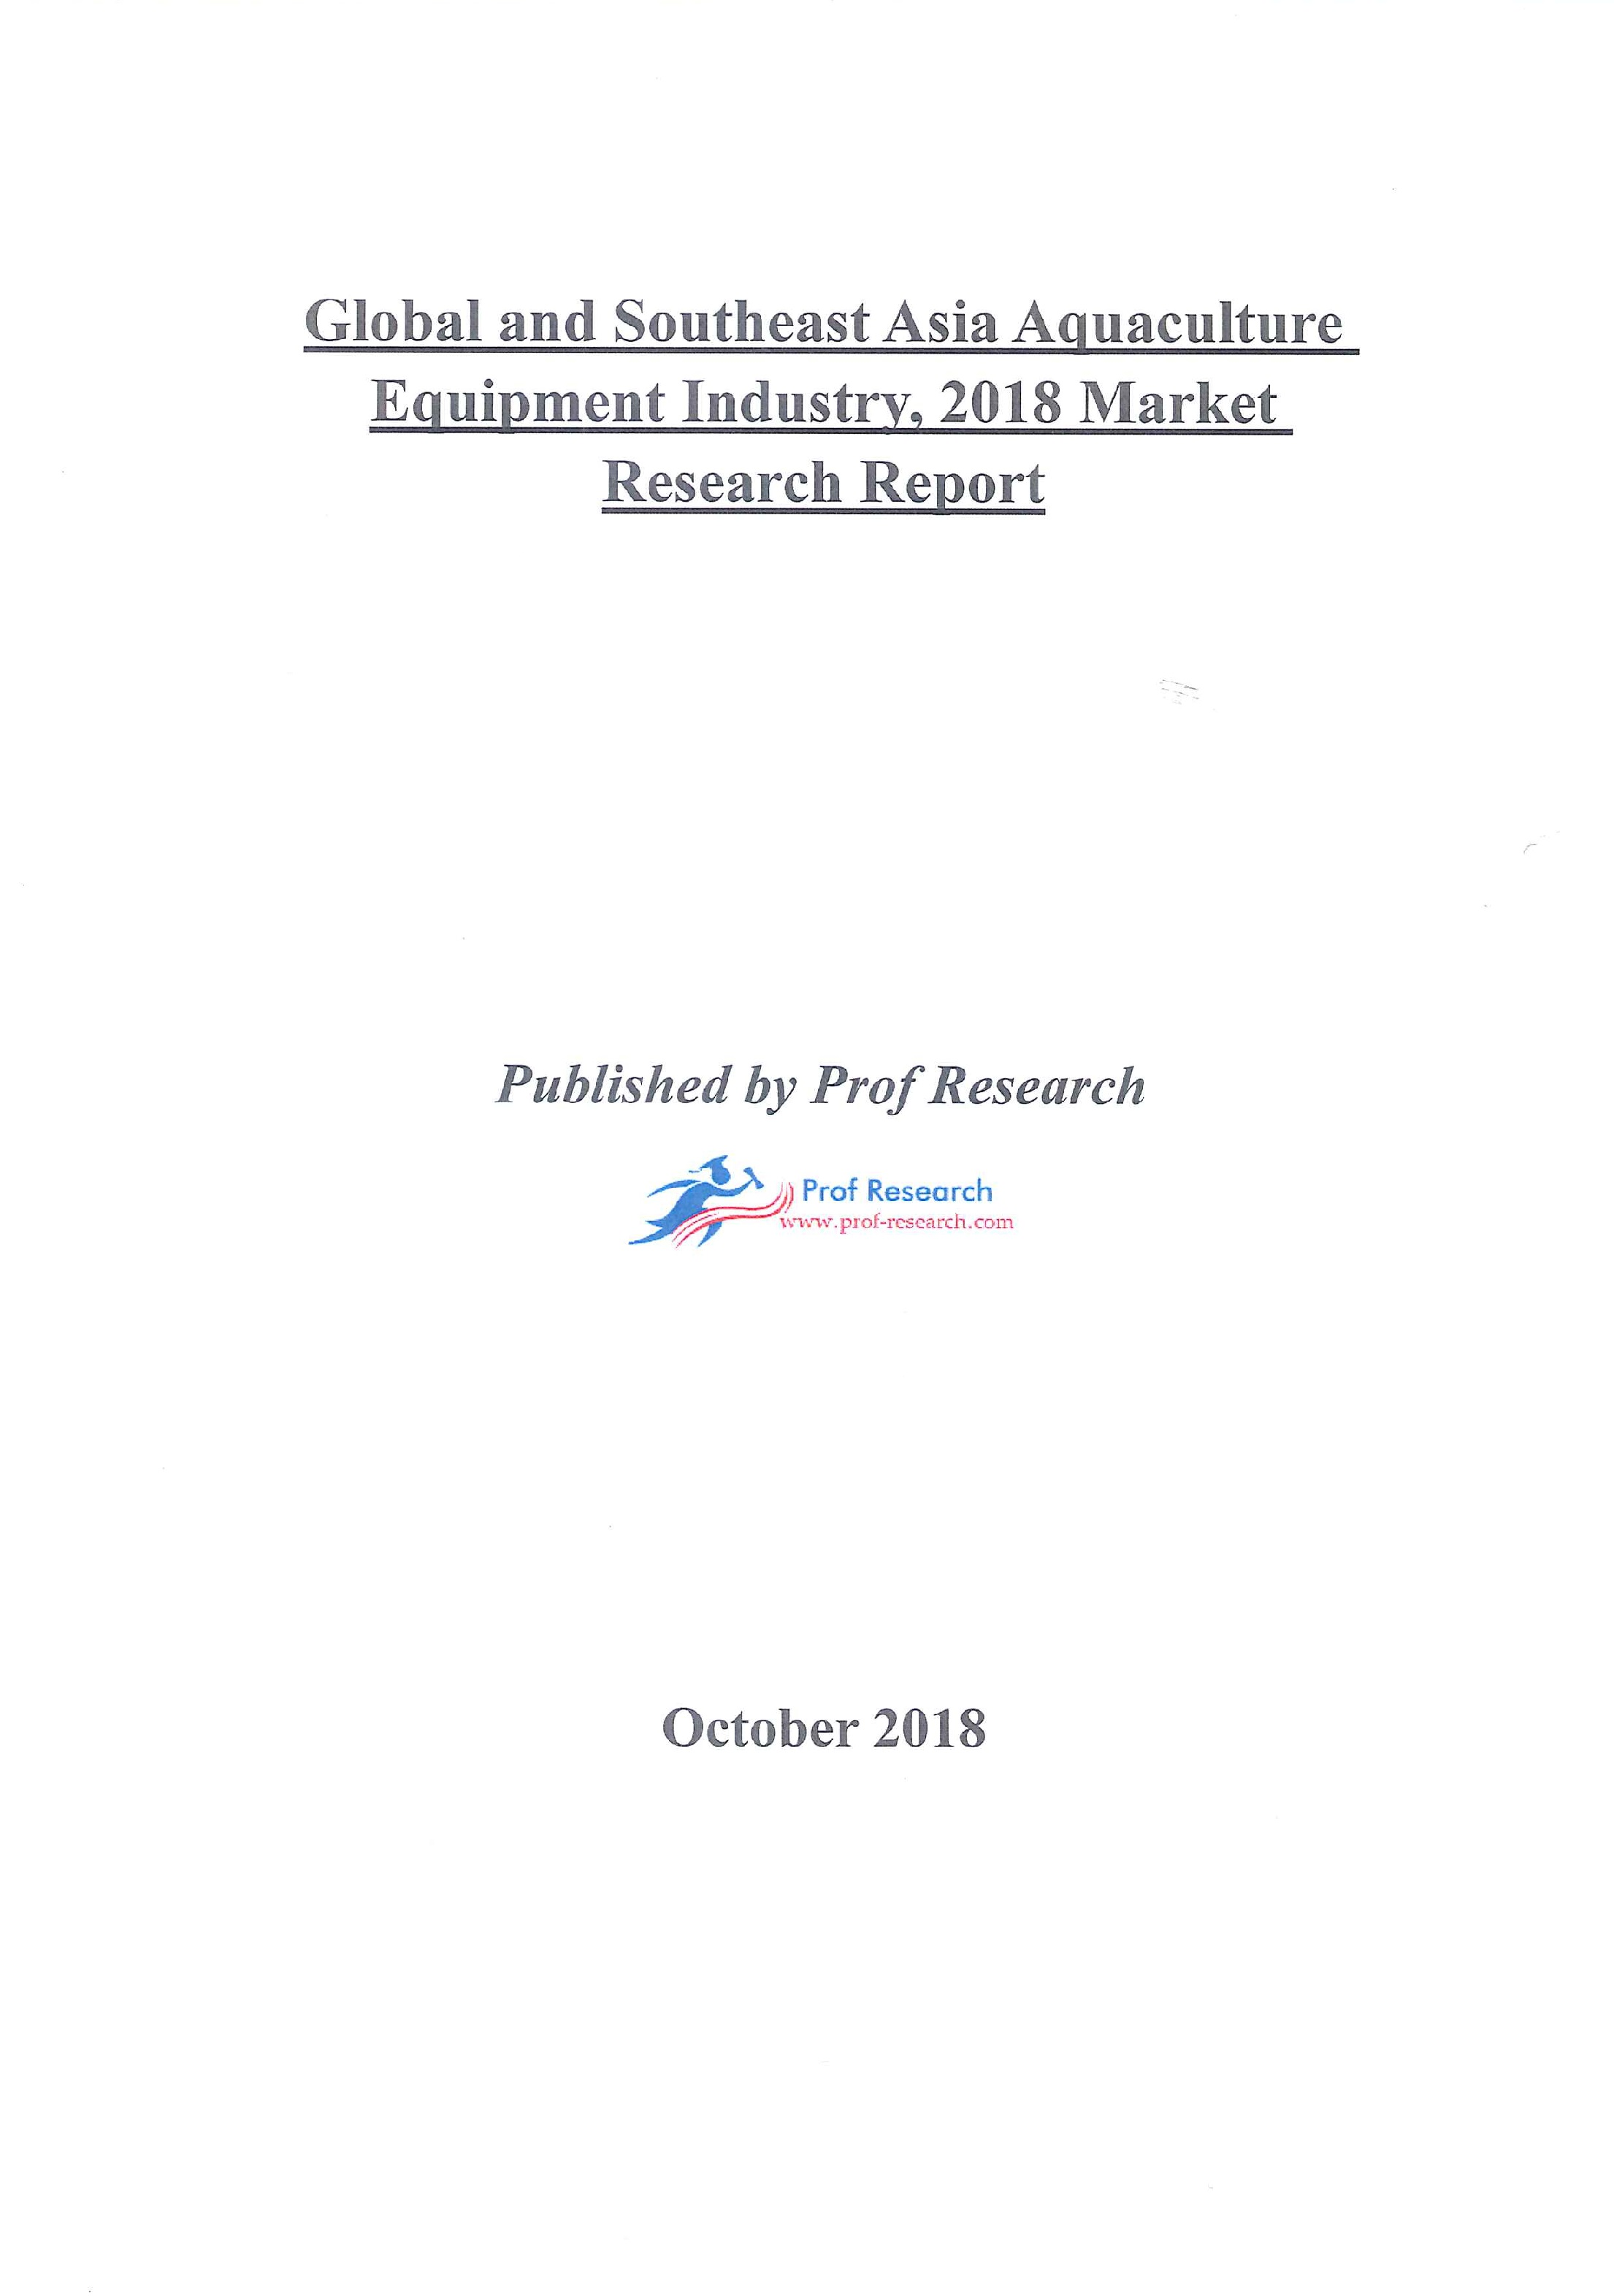 Global and Southeast Asia aquaculture equipment industry, 2018 market research report [e-book]